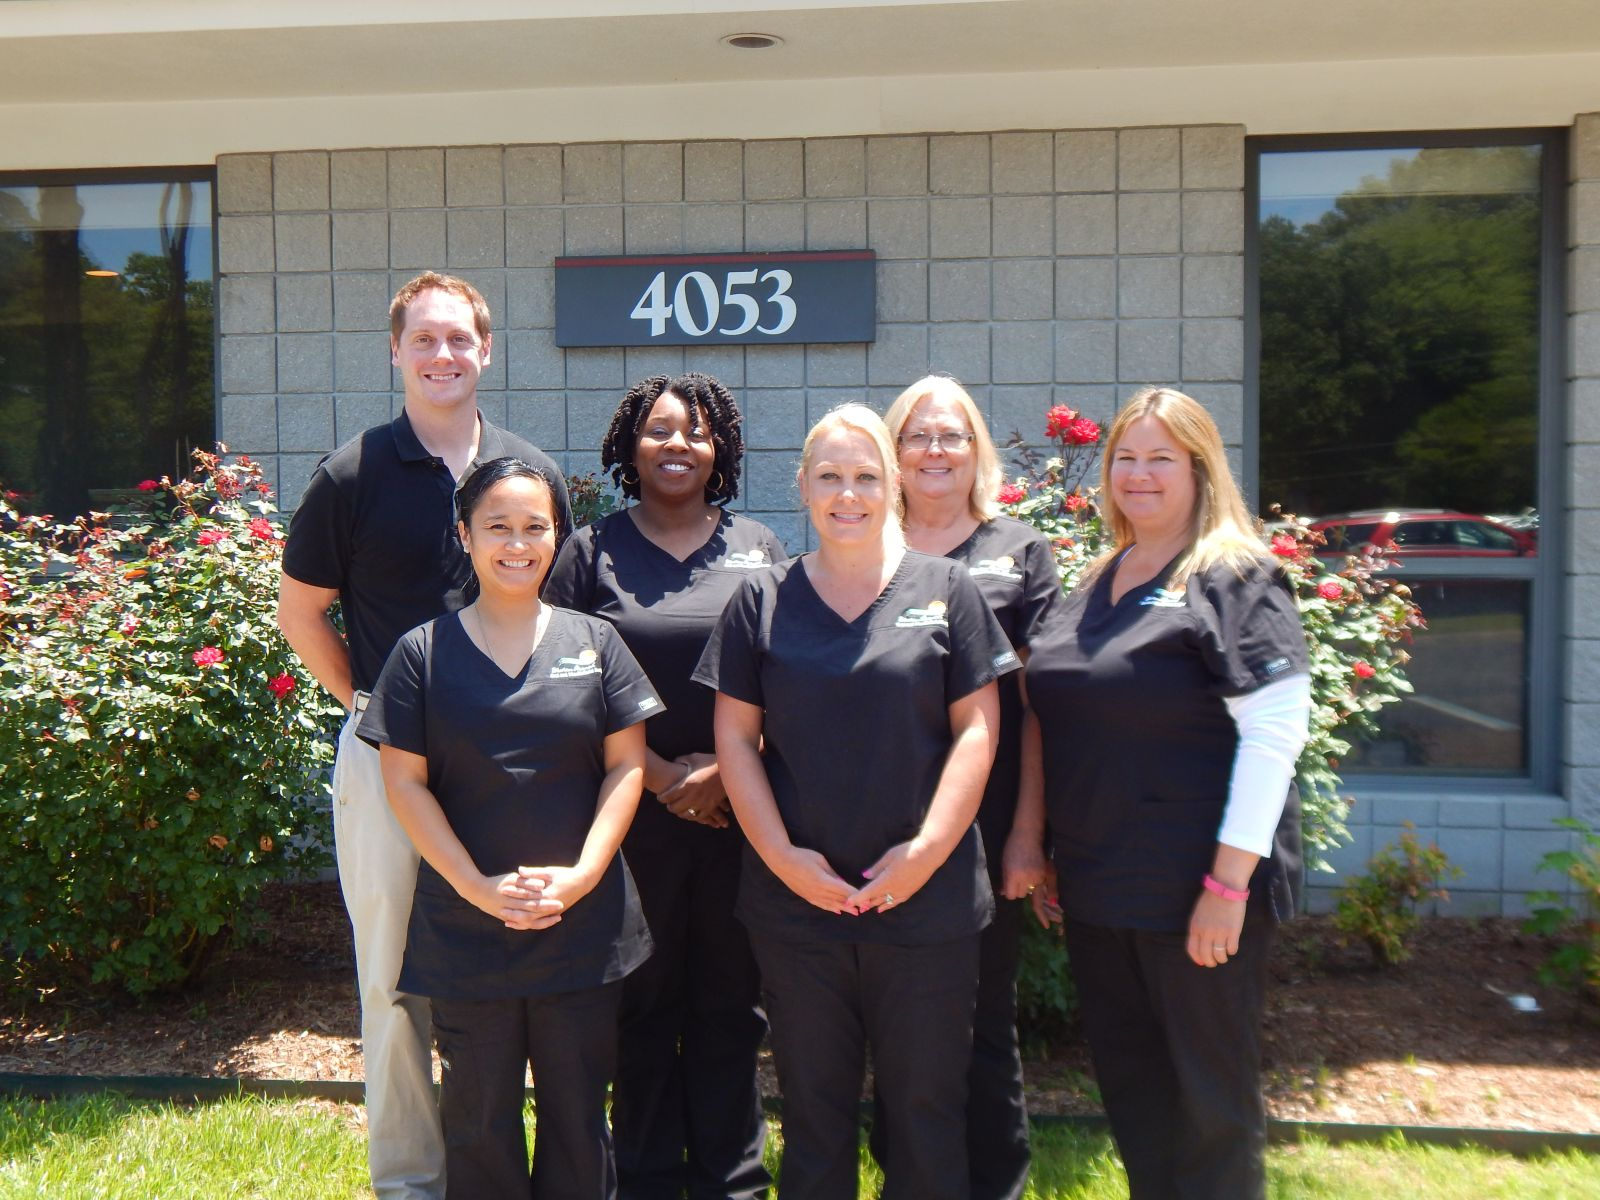 Chesapeake, VA Oral and Maxillofacial Surgery Staff Drs. Szakaly and Olson, PC